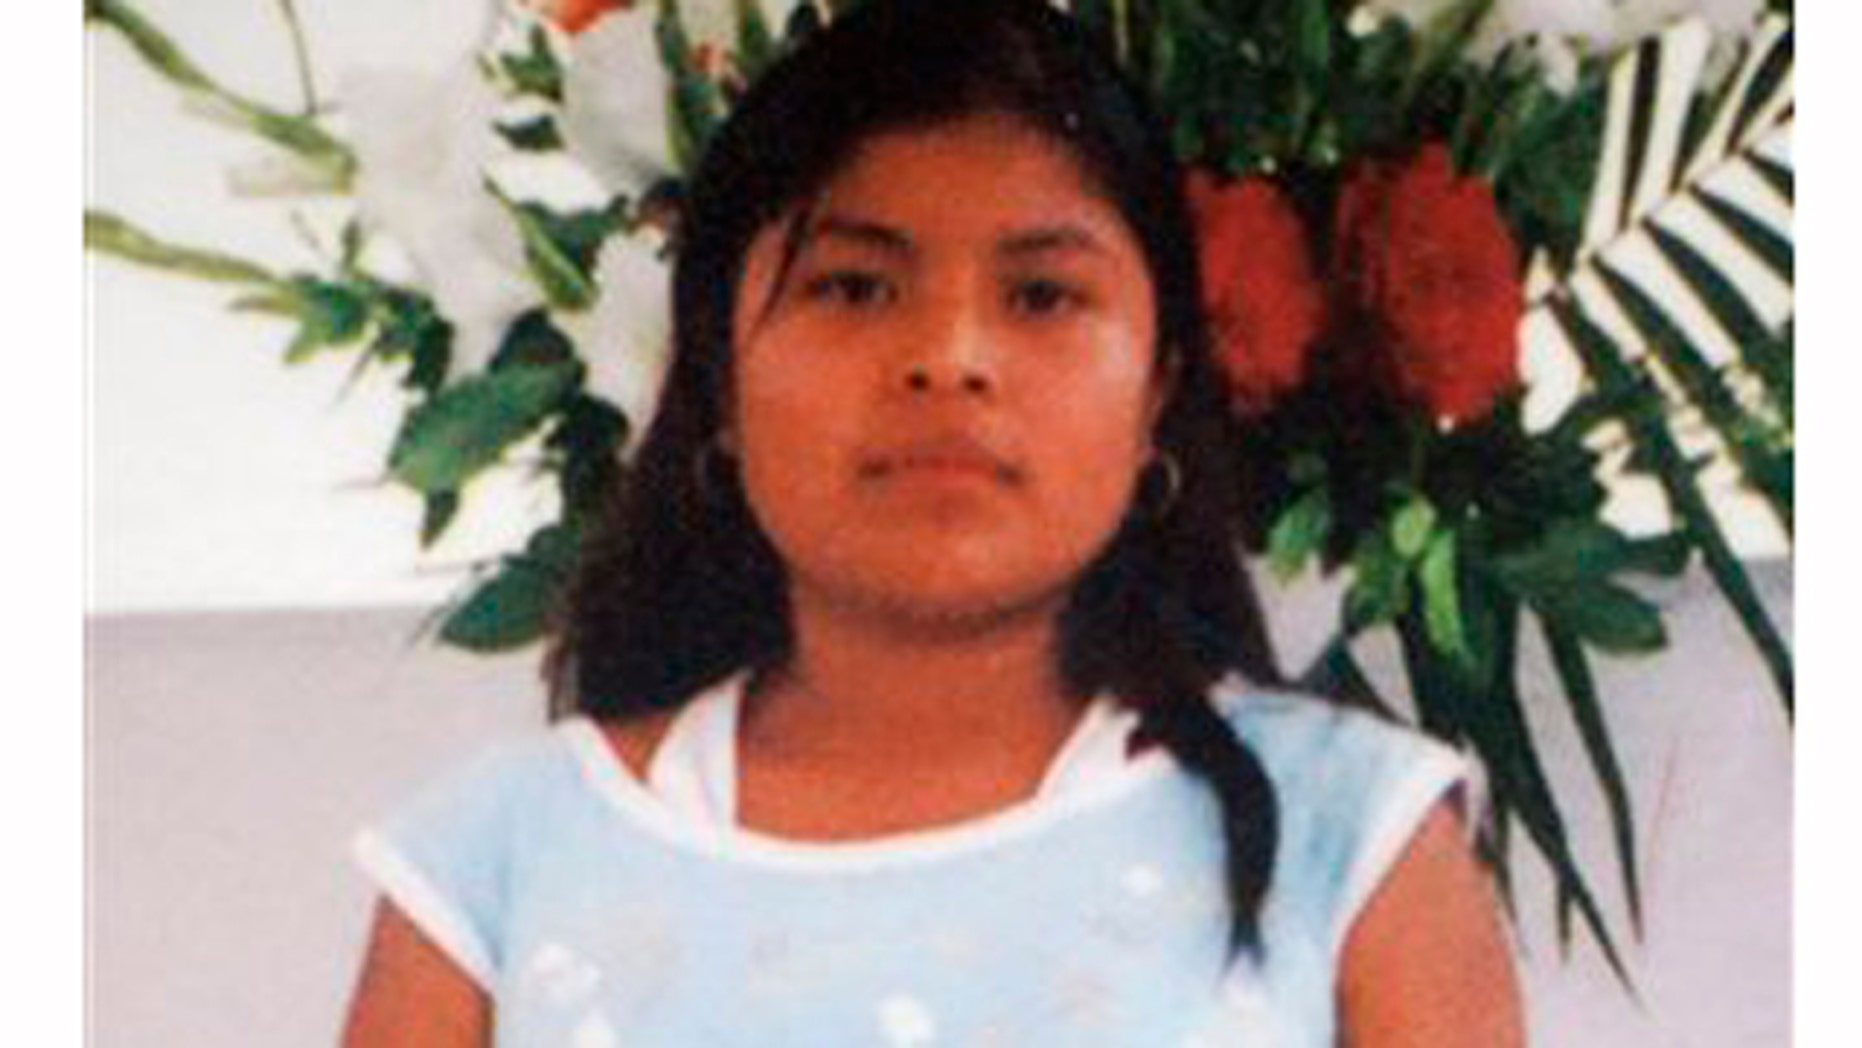 """Maria Isavel Vasquez Jimenez, a farmworker who died in 2008 after working for nine hours in a California vineyard without shade or water in near-100-degree temperature. Her family pleaded with Brown to pass a bill that would help farmworkers. """"We don't want another family to suffer like ours,"""" said Maria's uncle, Doroteo Jimenez."""